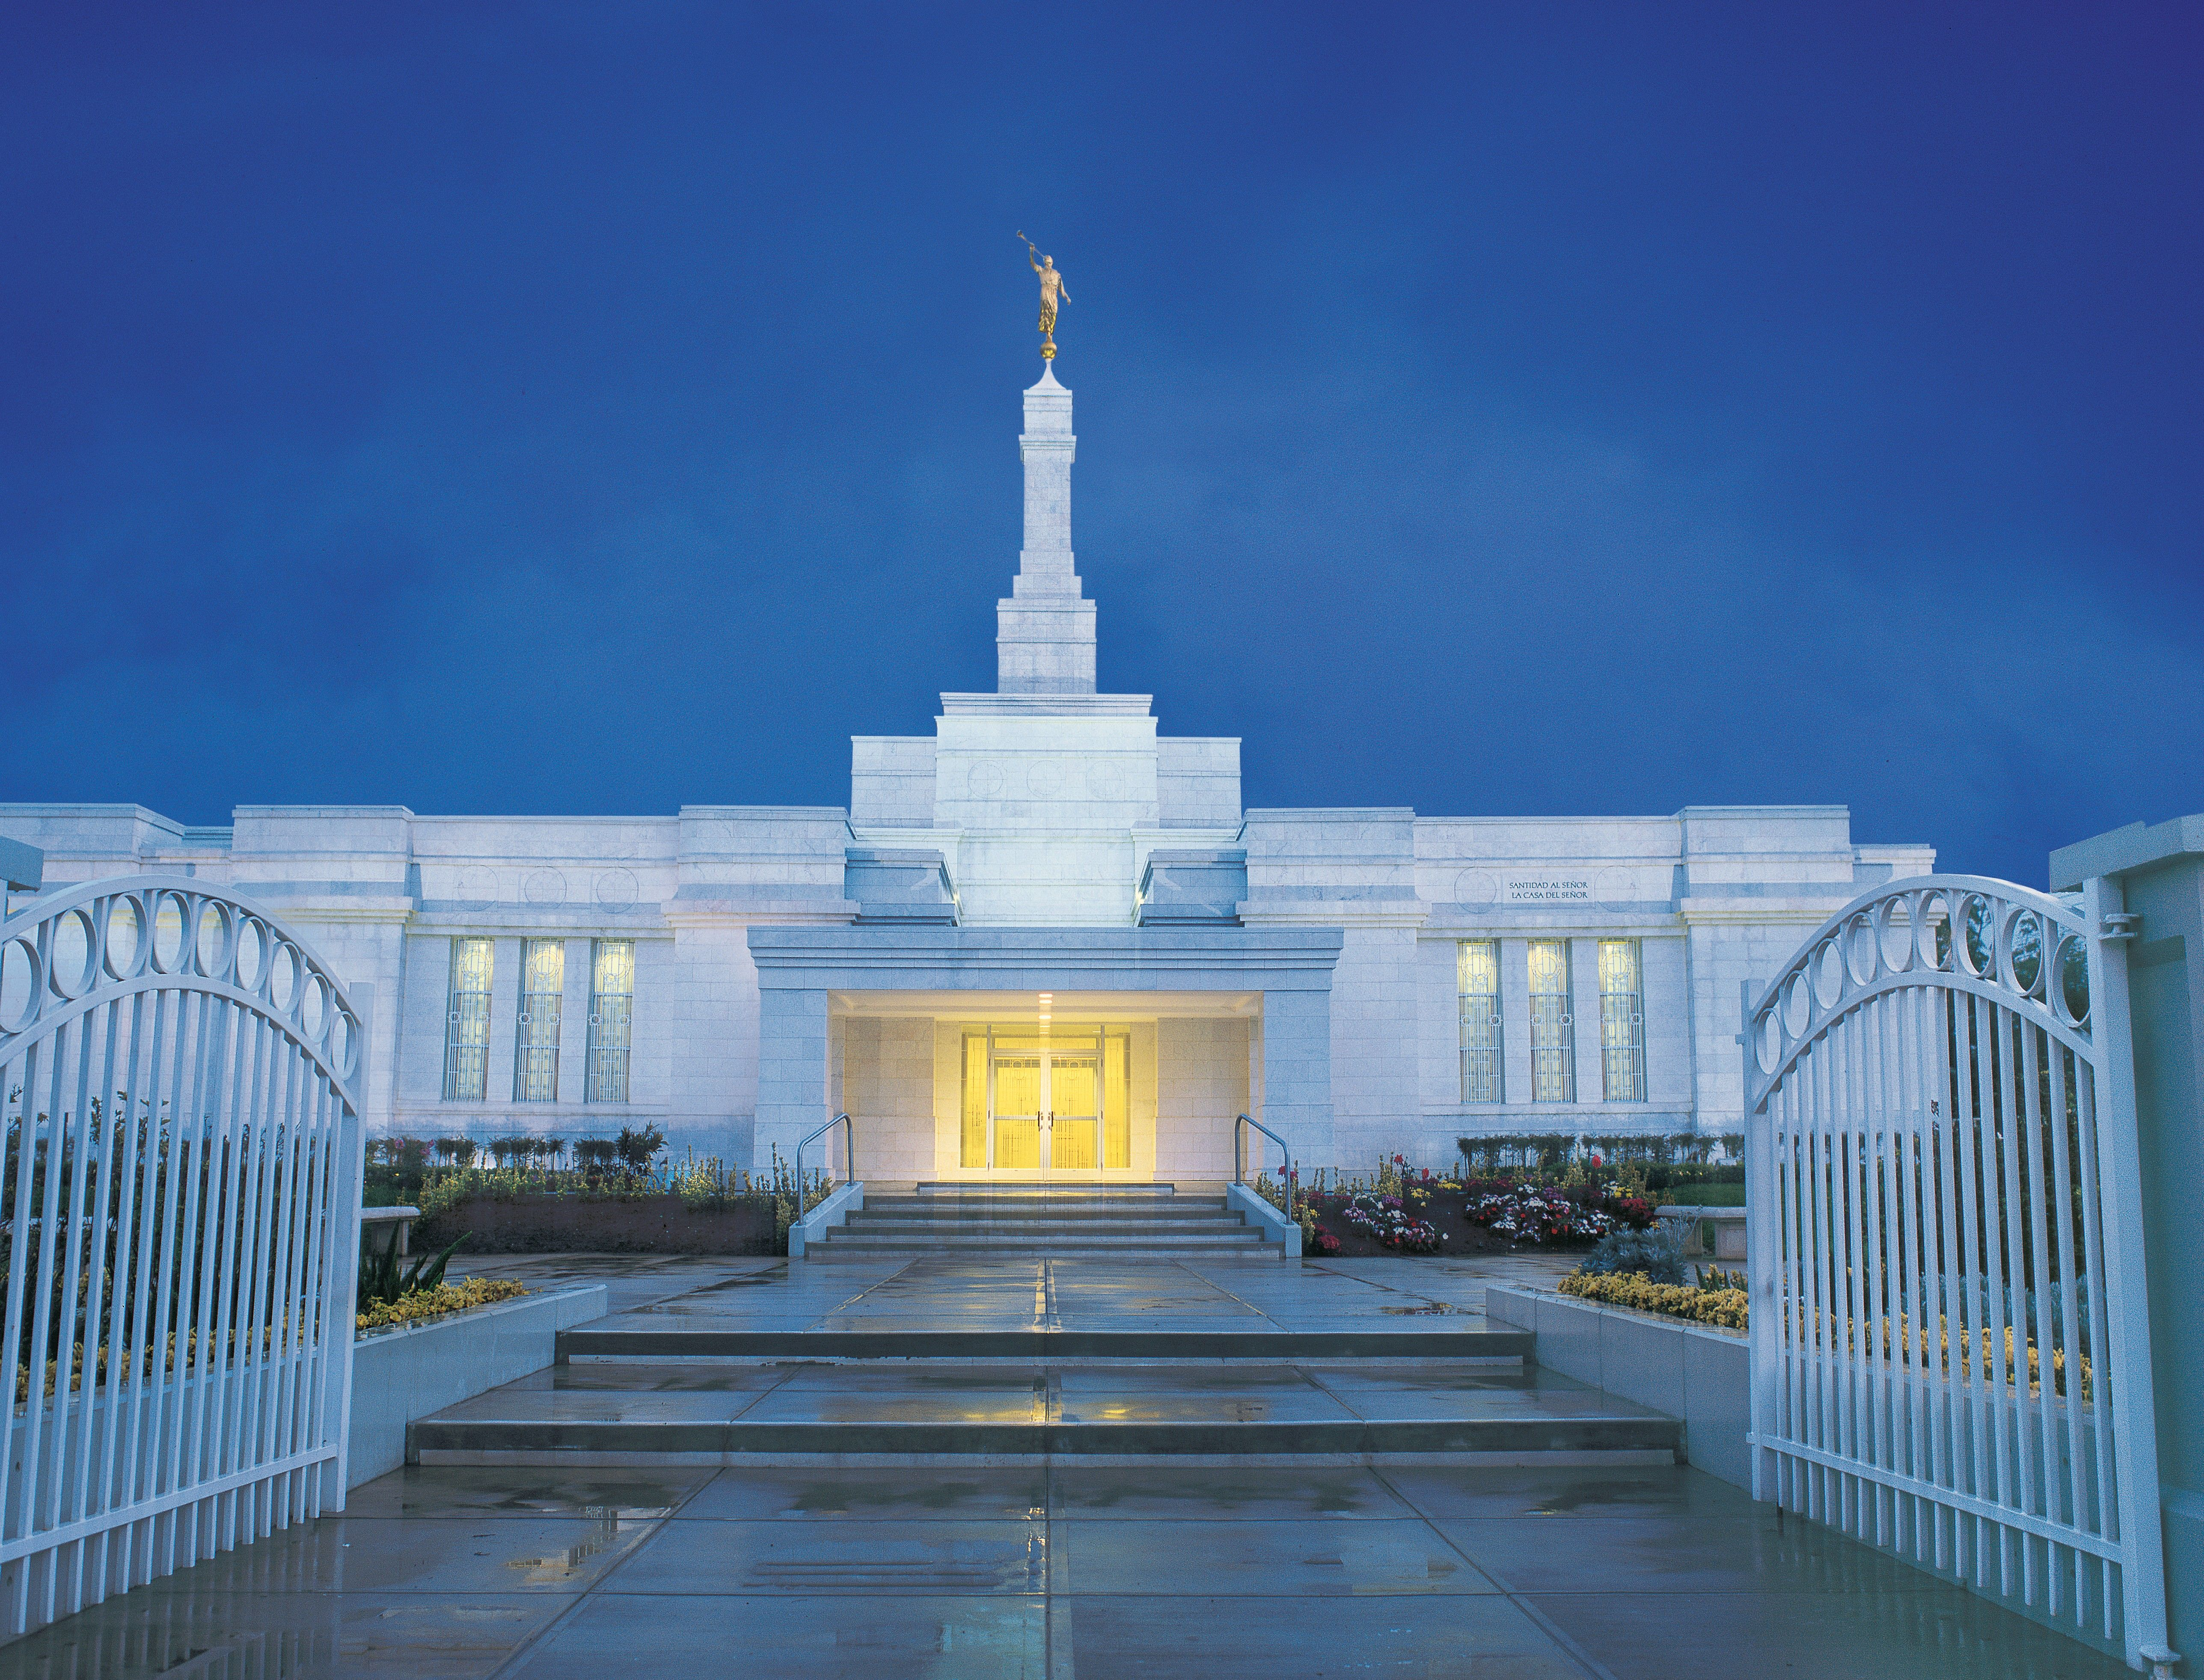 The Oaxaca Mexico Temple in the evening.